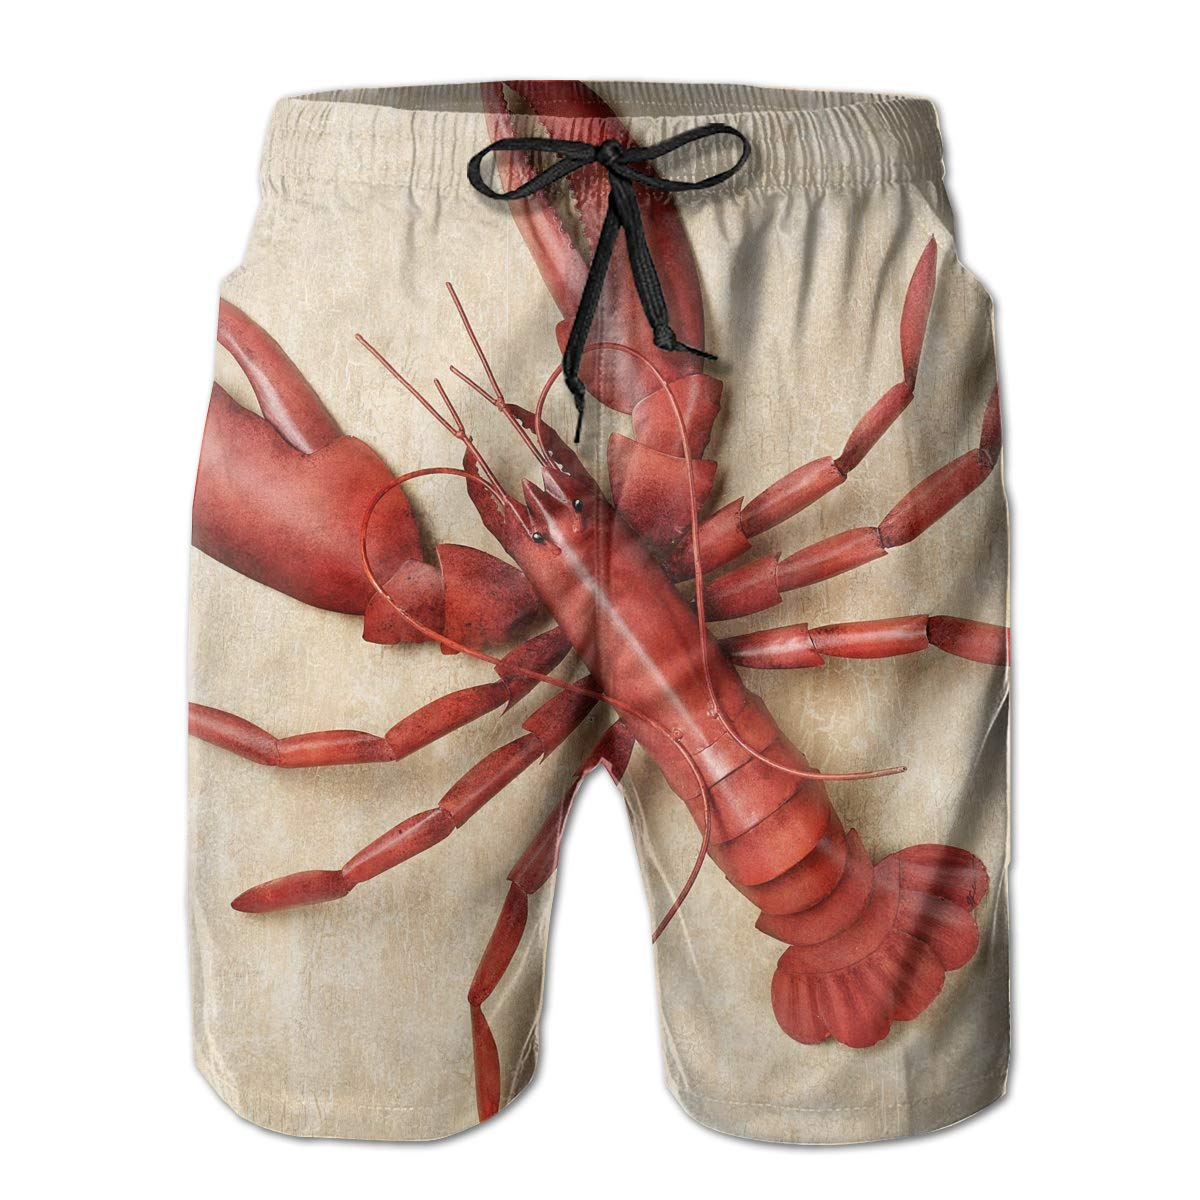 Hateone Life Mens Beach Shorts Quick Dry Red Lobster Summer Holiday Mesh Lining Swimwear Board Shorts with Pockets XXL